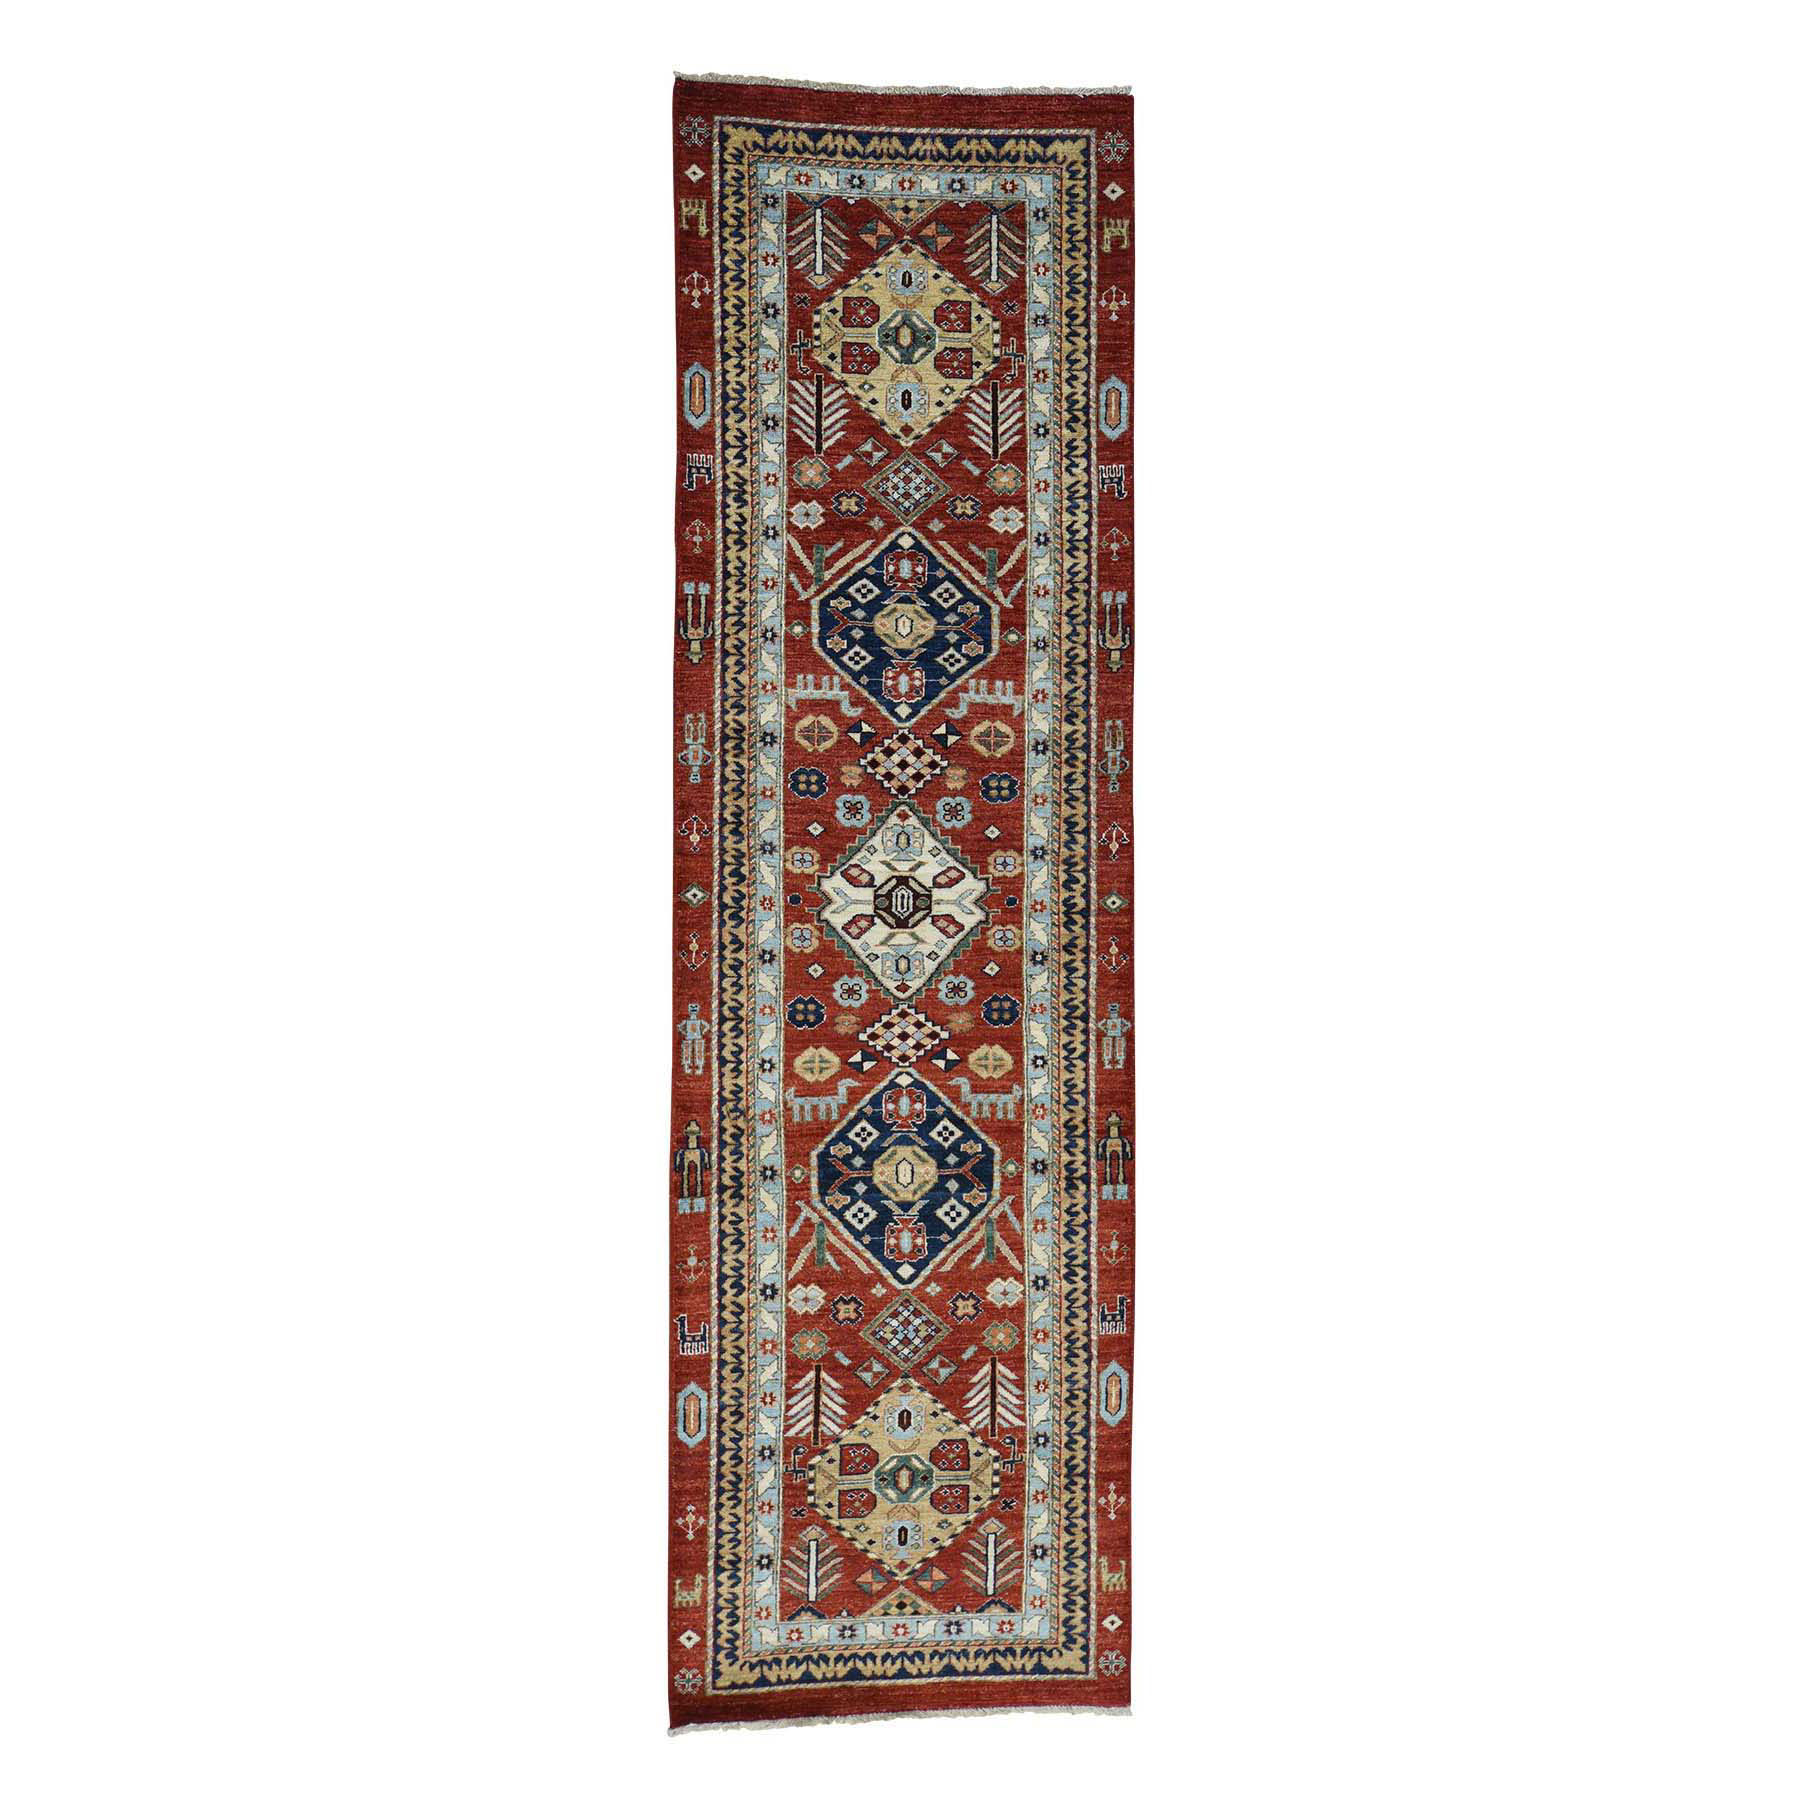 Nomadic And Village Collection Hand Knotted Red Rug No: 0174034